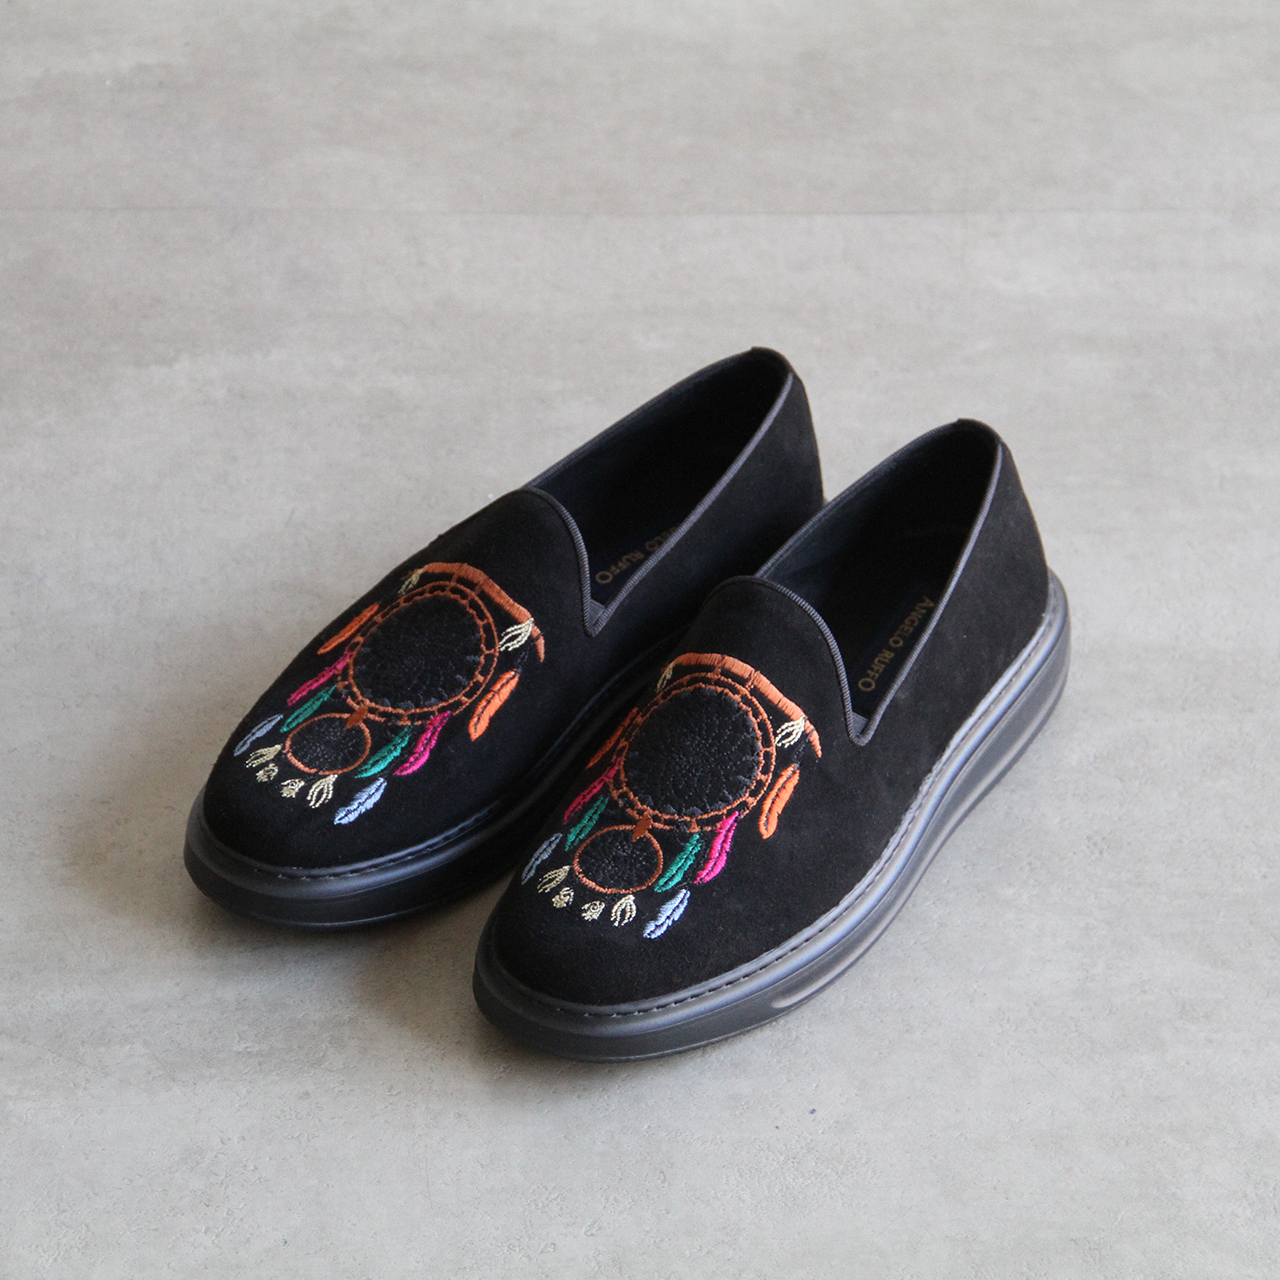 ANGELO RUFFO【 mens 】embroidery loafer